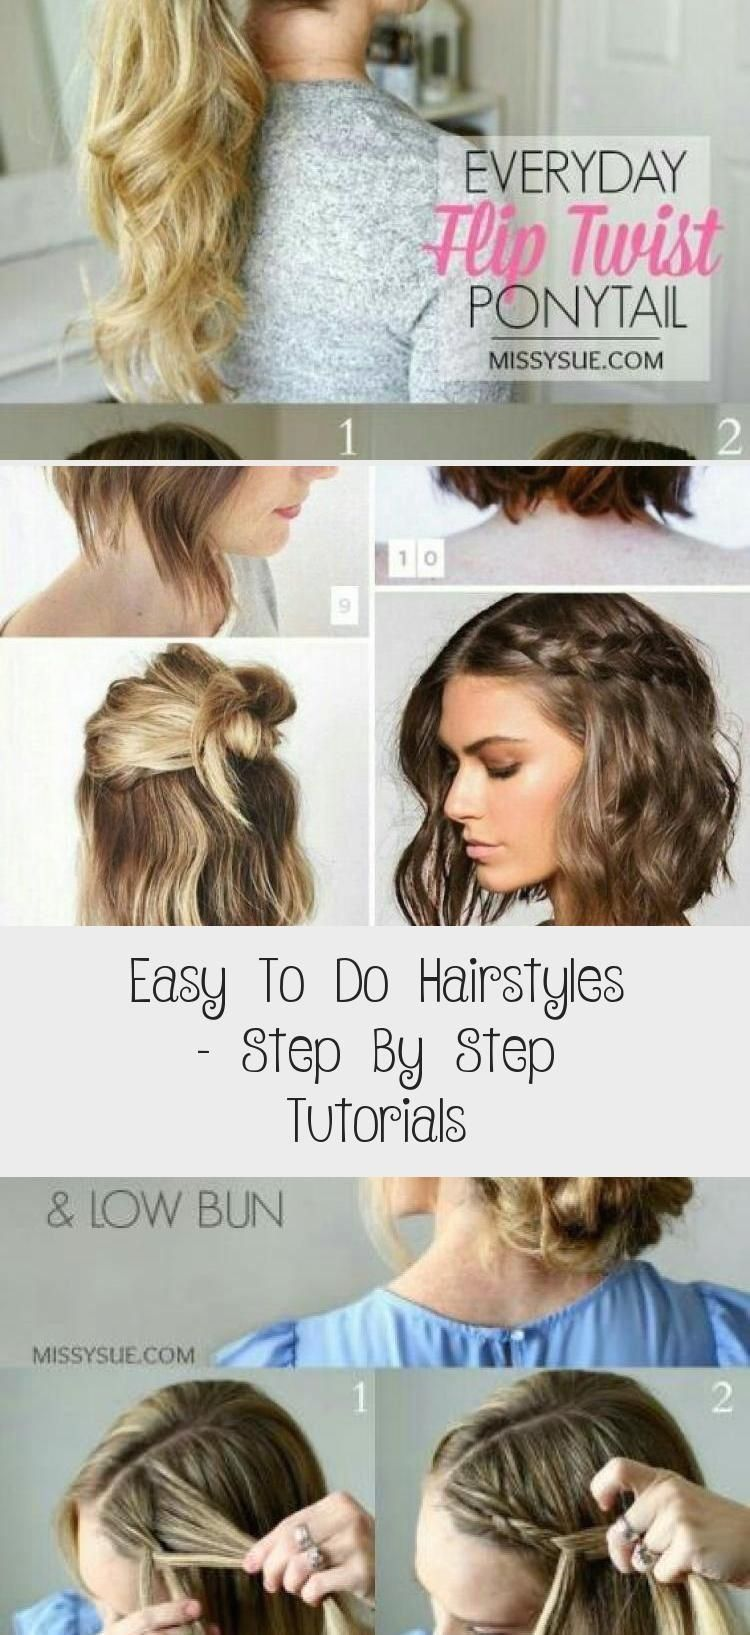 Easy To Do Hairstyles Step By Step Tutorials Hair Styles Hair Style Ideas 1004 In 2020 Easy To Do Hairstyles Hair Styles Hair Tutorial